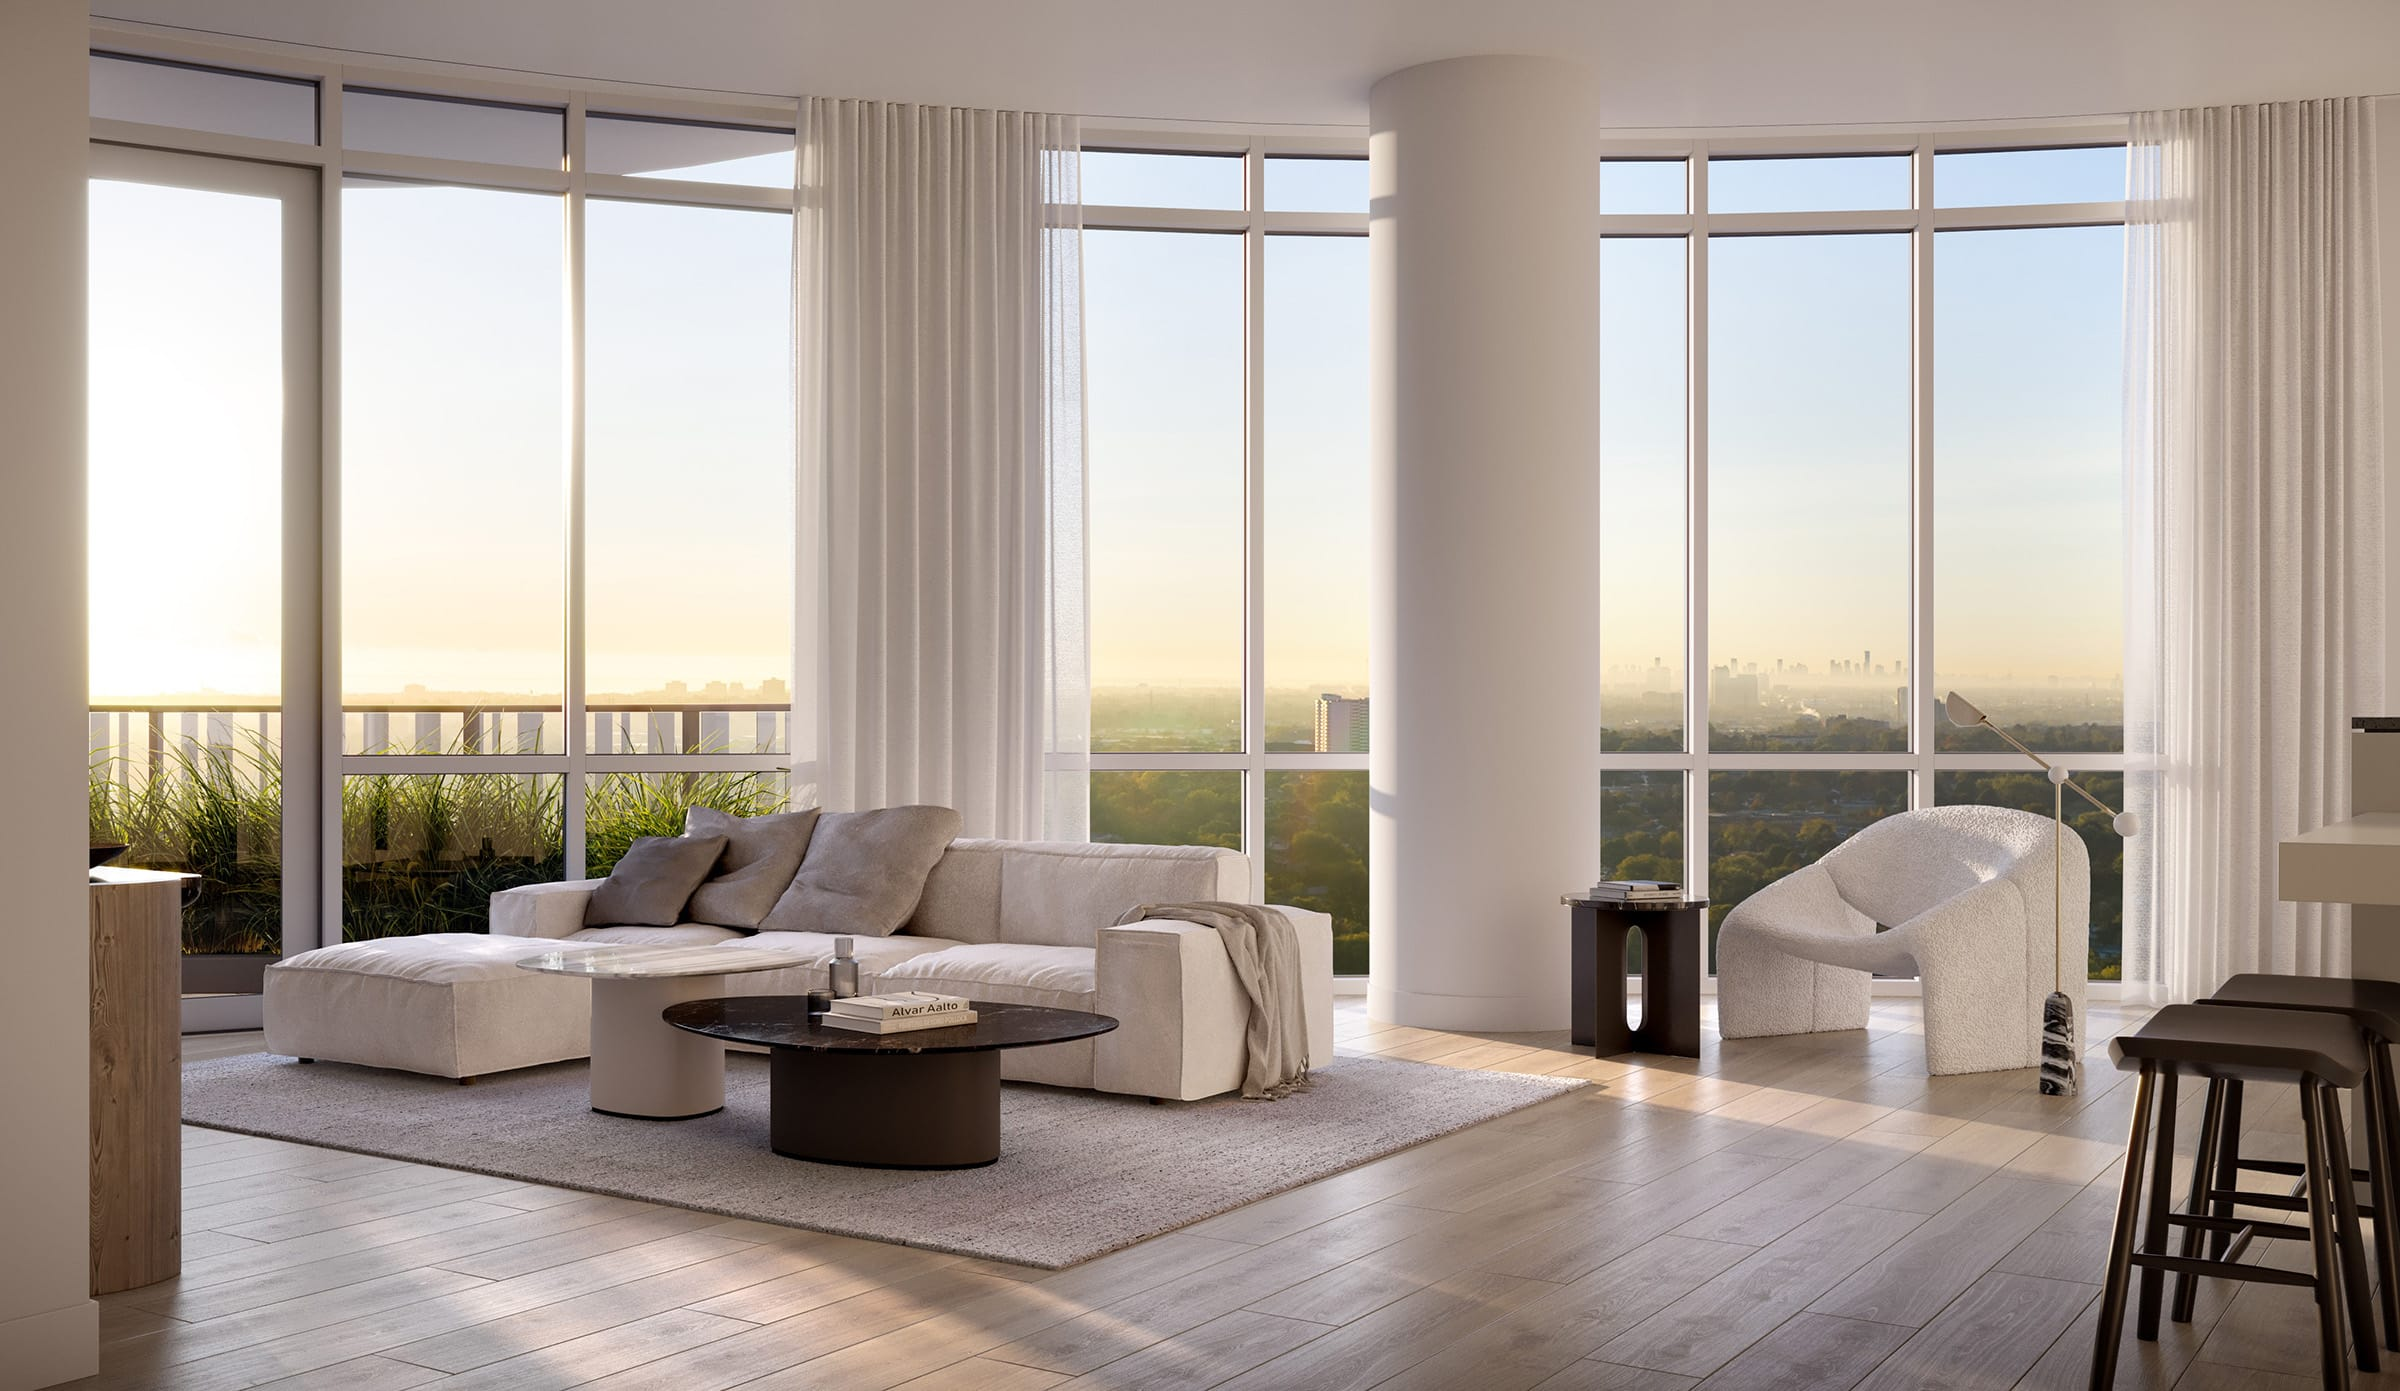 [object object] Downtown Mississauga New Condos For Sale alba condos 1 fairview rd e mississauga hurontario lrt living room